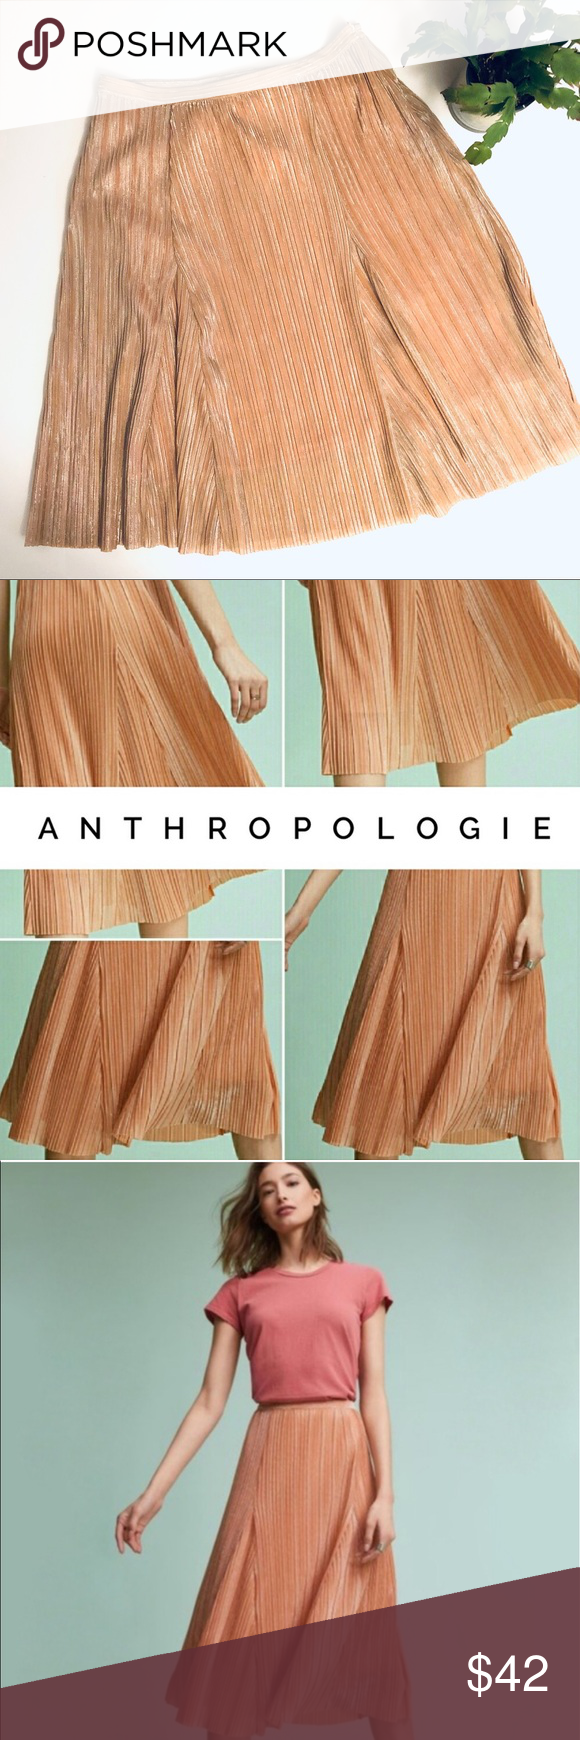 7df16c8e6 MAEVE Ambra Metallic Rosegold sparkle midi skirt M New w Tags Purchased at  TJ Max Maeve by Anthropologie Gorgeous Ambra Metallic Rose gold Camel Tan  sparkle ...